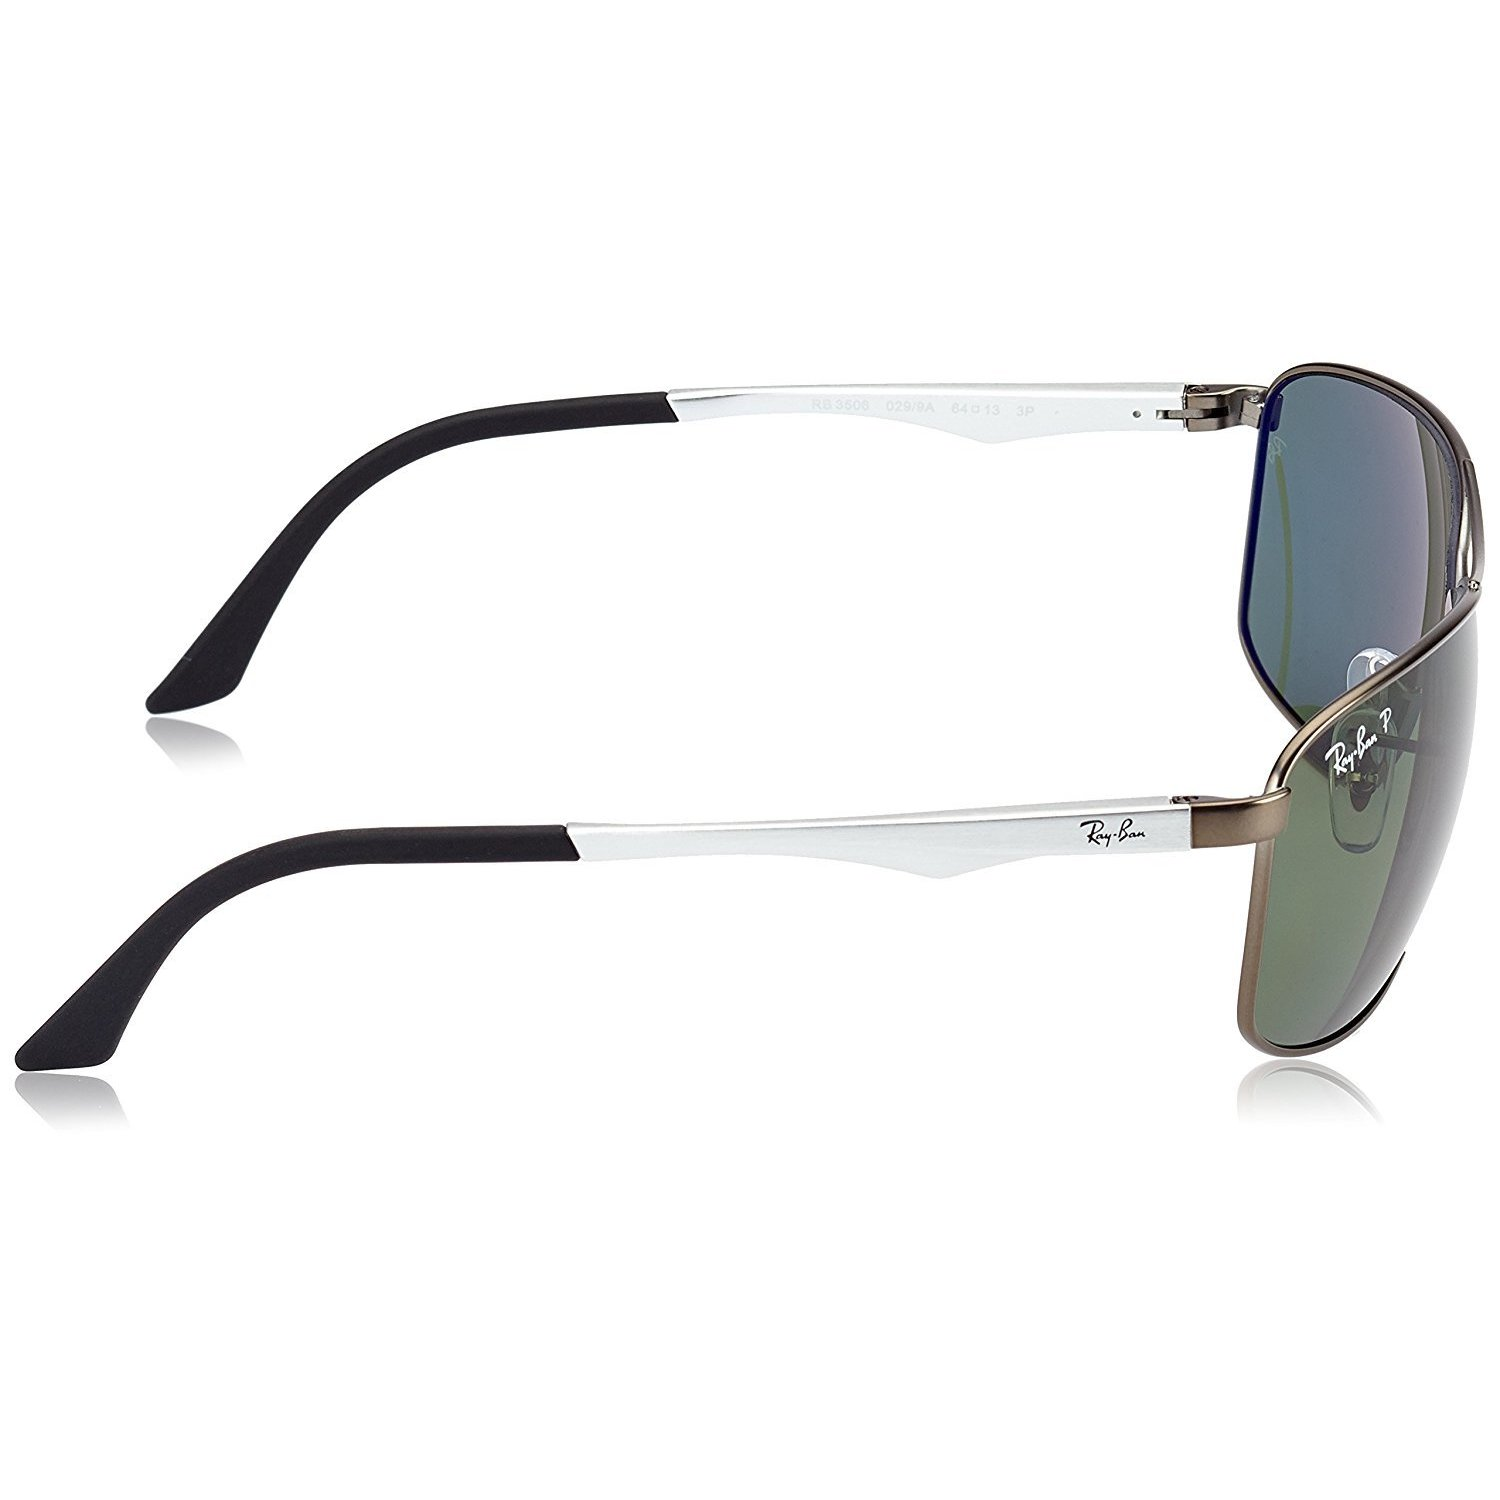 f5303f8695 Shop Ray-Ban RB3506 029 9A Men s Gunmetal Silver Frame Polarized Green Lens  Sunglasses - Free Shipping Today - Overstock - 15003040